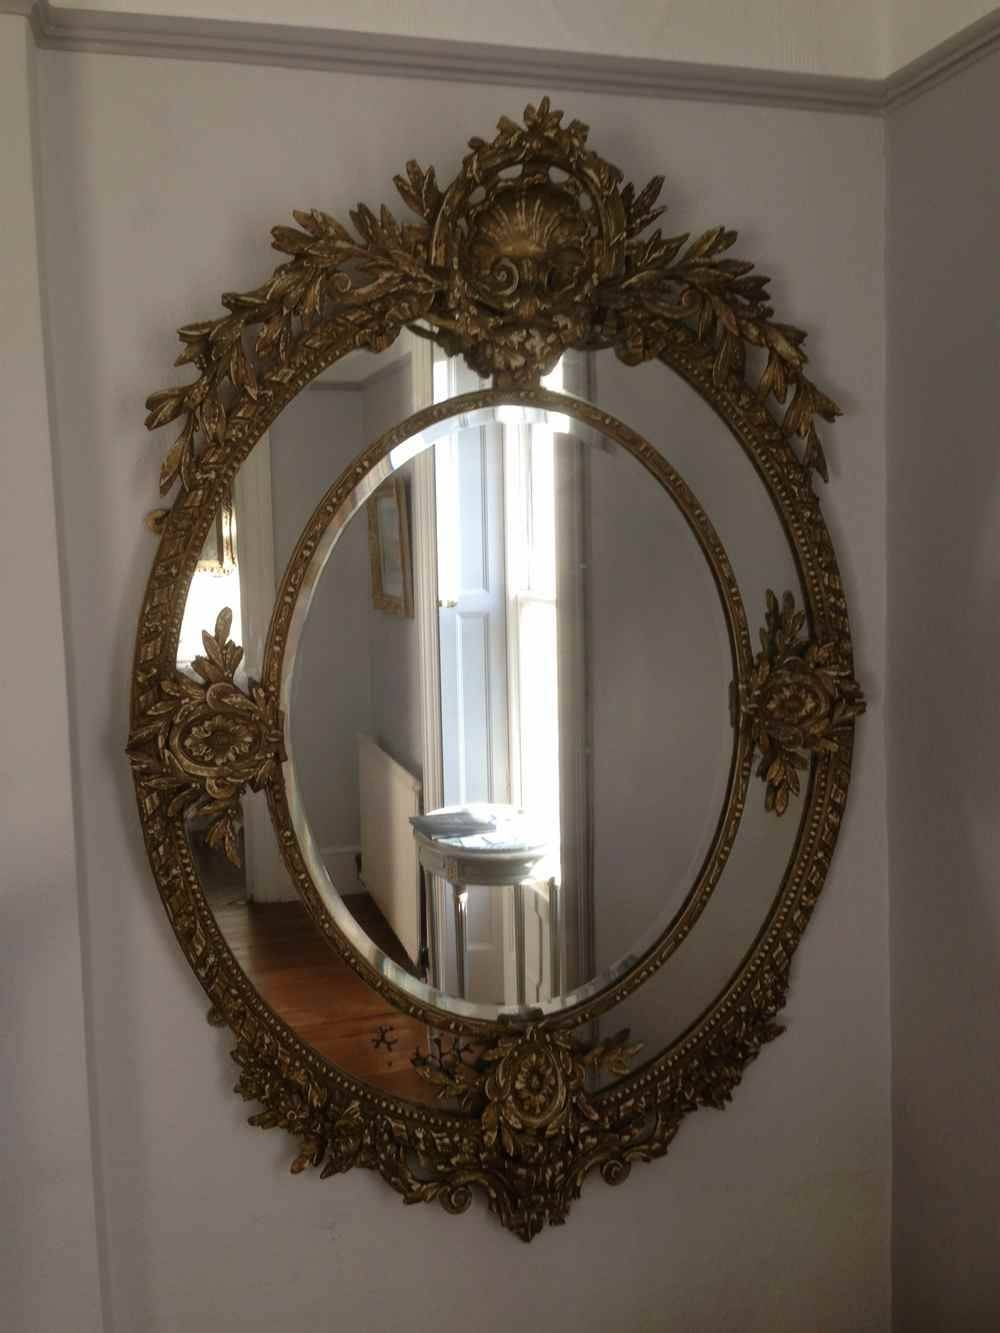 Antique Full Length Wall Mirrors Antique Wood Framed Wall Mirrors with Large Antique Wall Mirrors (Image 4 of 25)